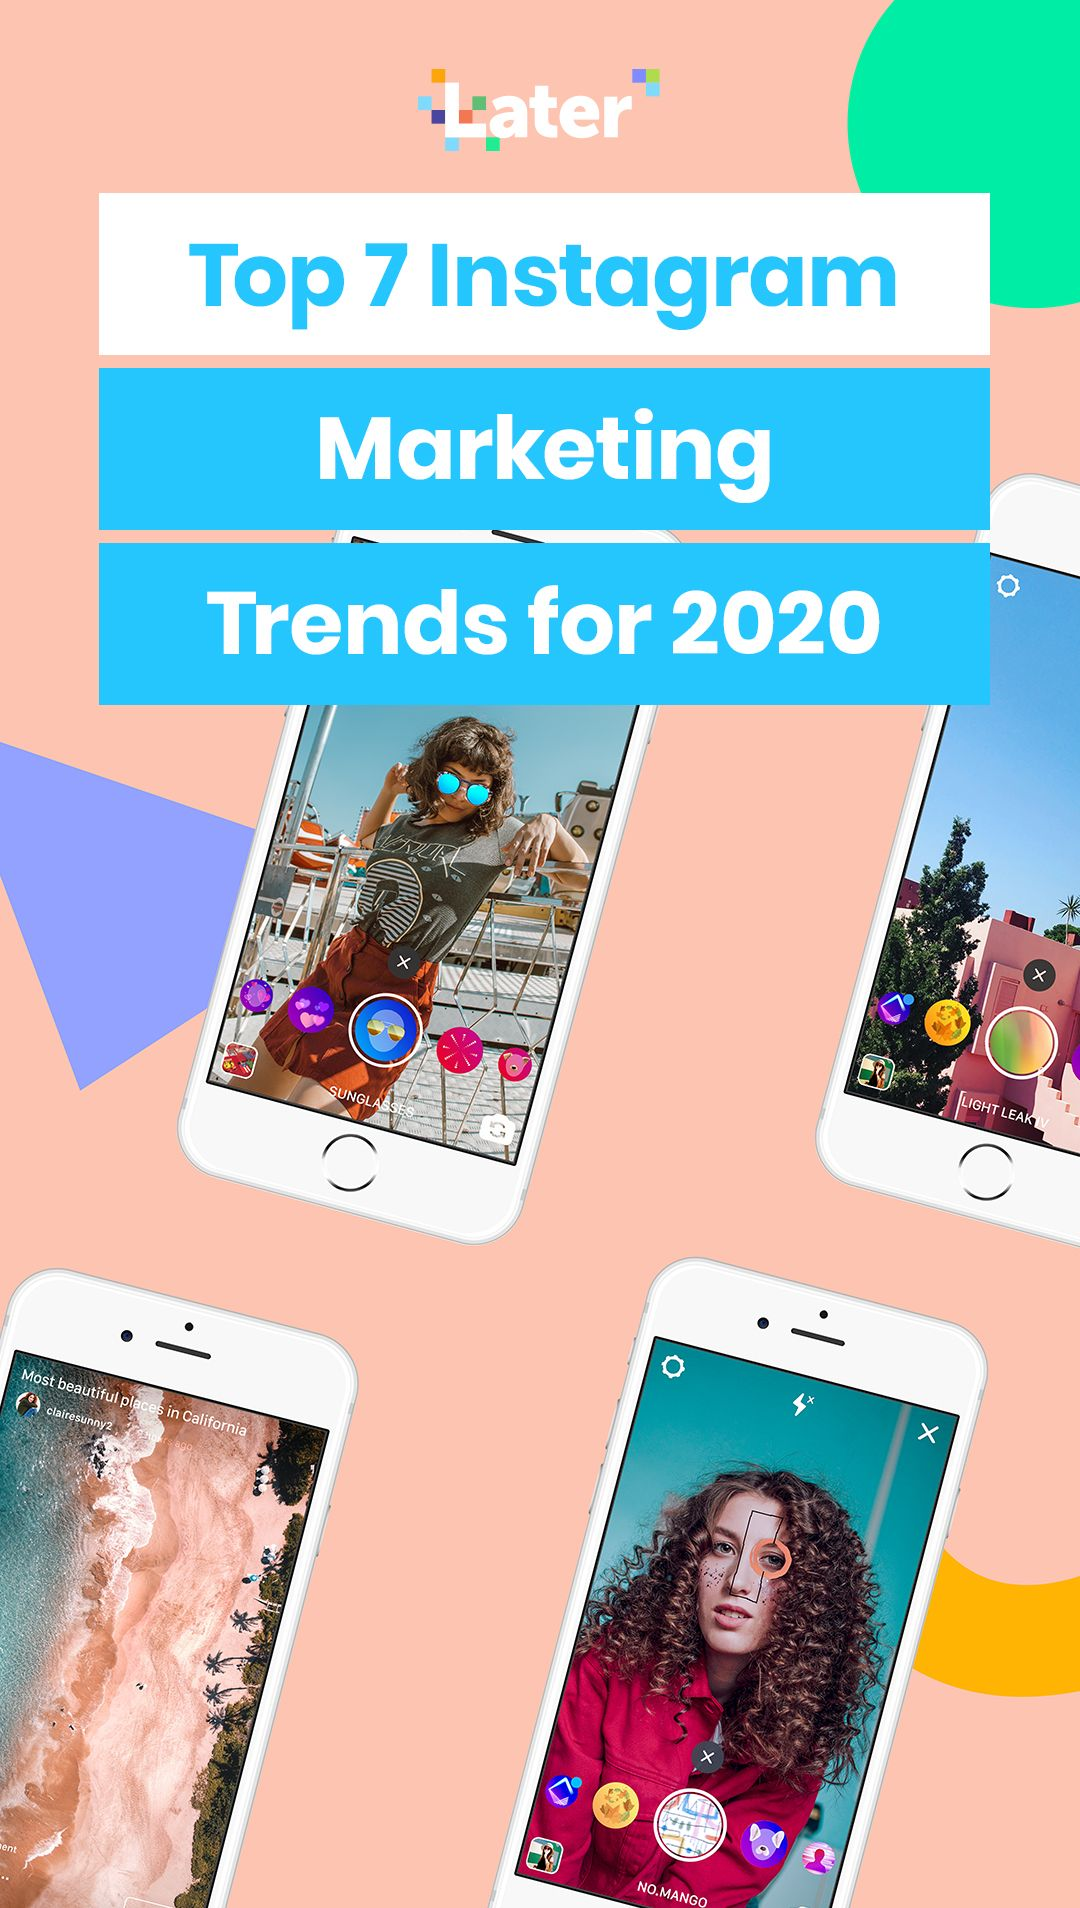 Top 7 Instagram Marketing Trends for 2020 in 2020 (With